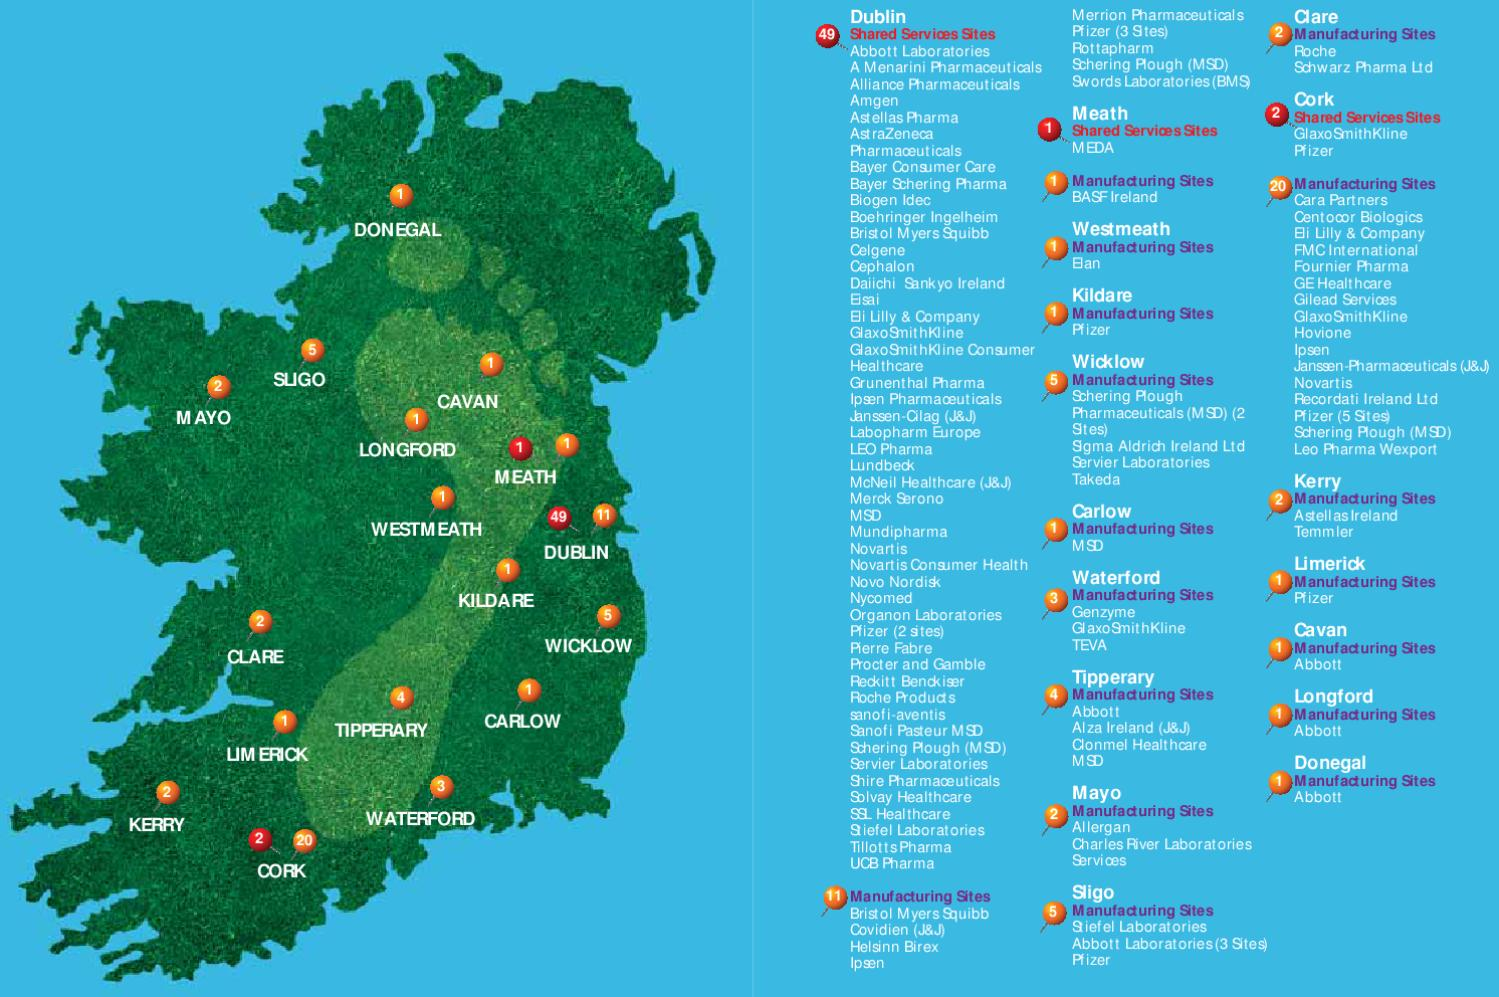 Map of Pharmaceutical Industry Locations in Ireland by Irish